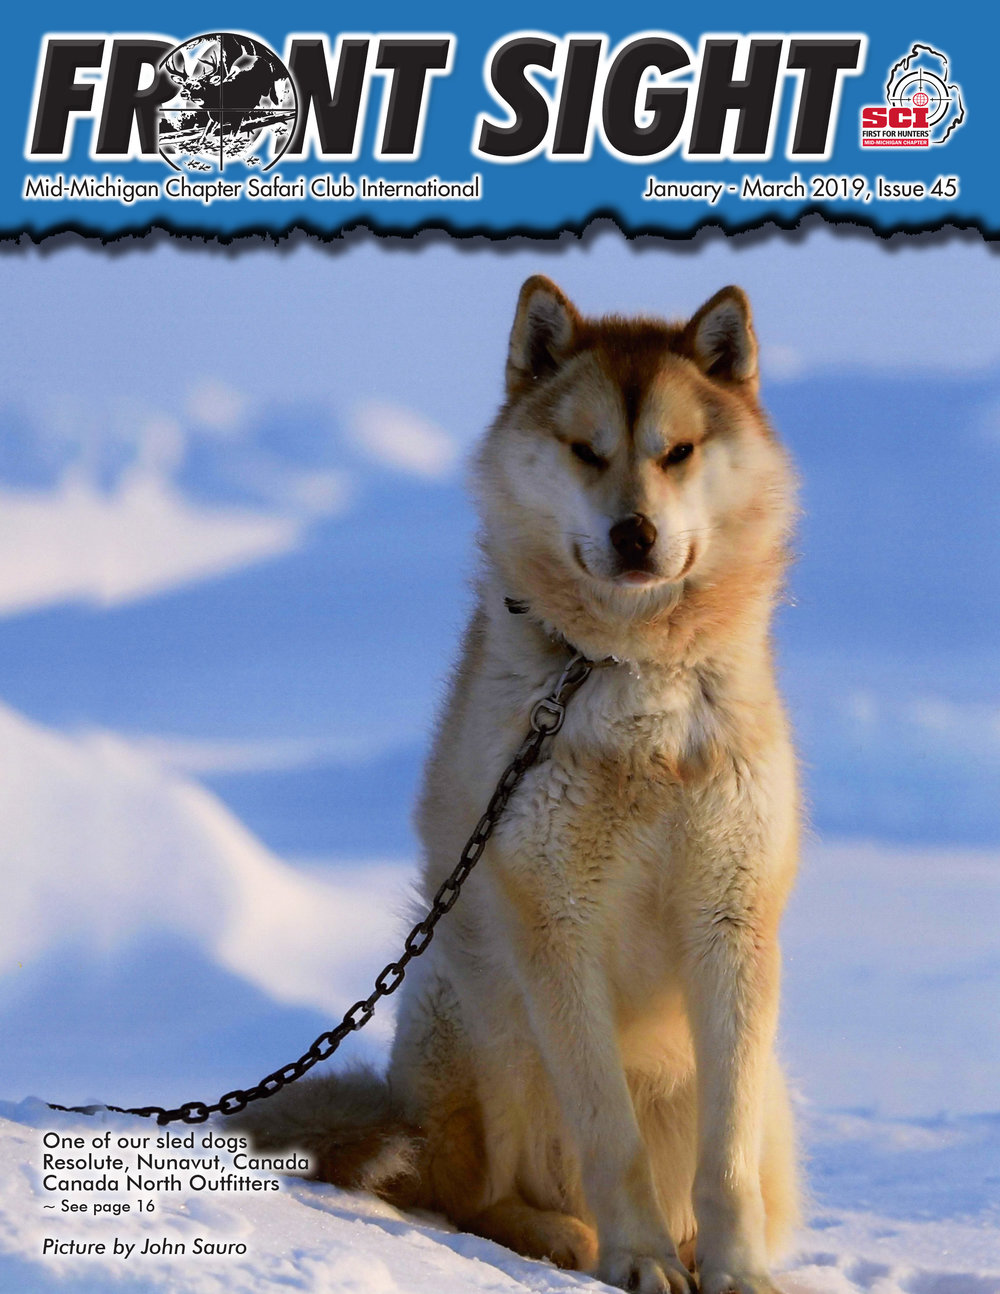 Issue 45, January 2019